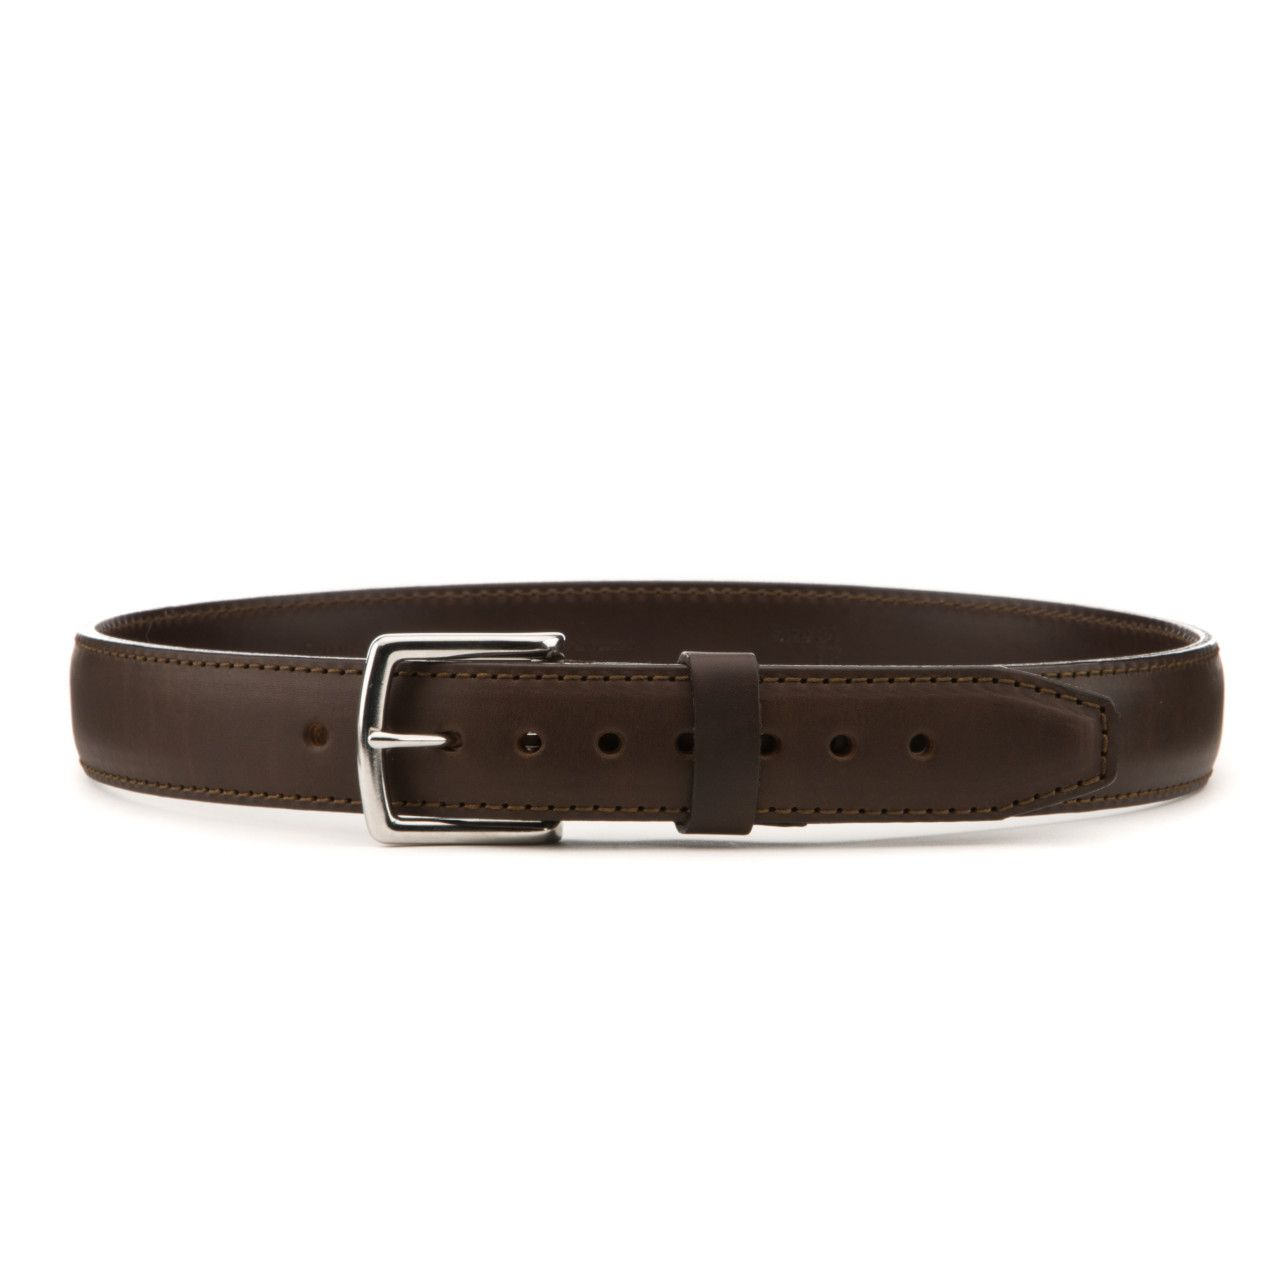 leather tow belt in dark coffee brown leather